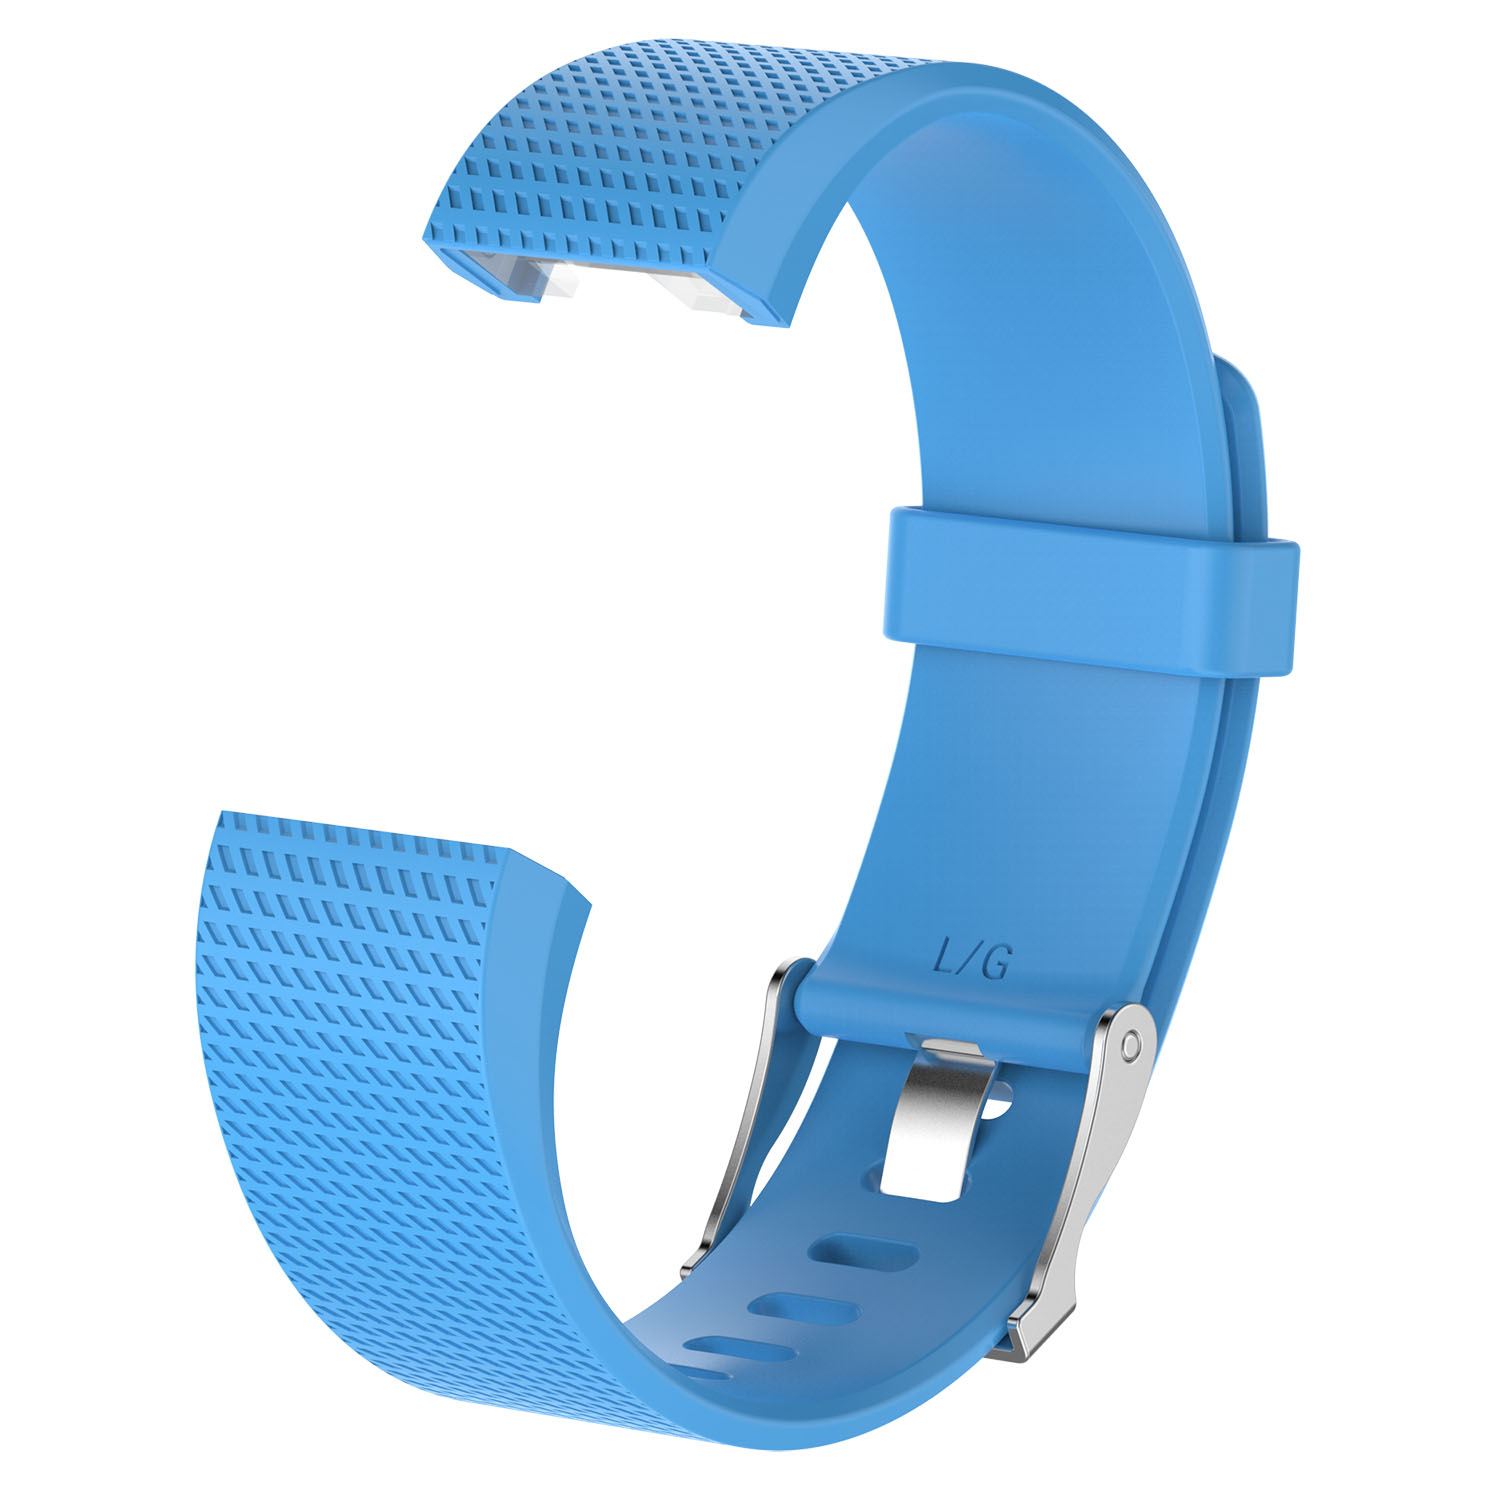 Replacement-Silicone-Wristband-Watch-Strap-Bands-Bracelet-For-Fitbit-Charge-2 thumbnail 71